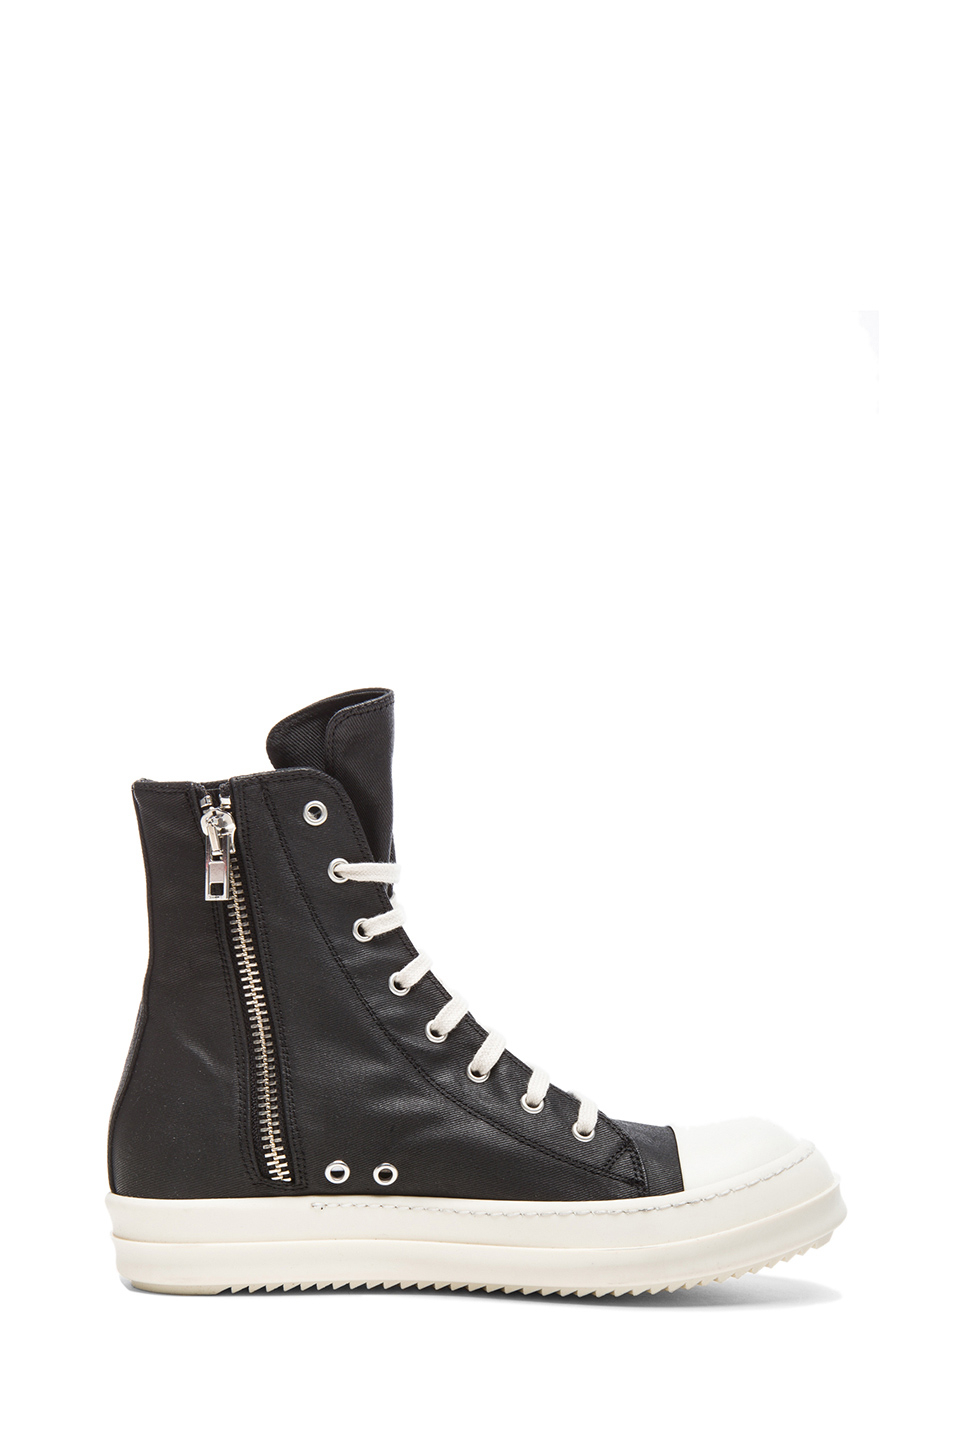 Rick Owens Drkshdw Women S Shoes